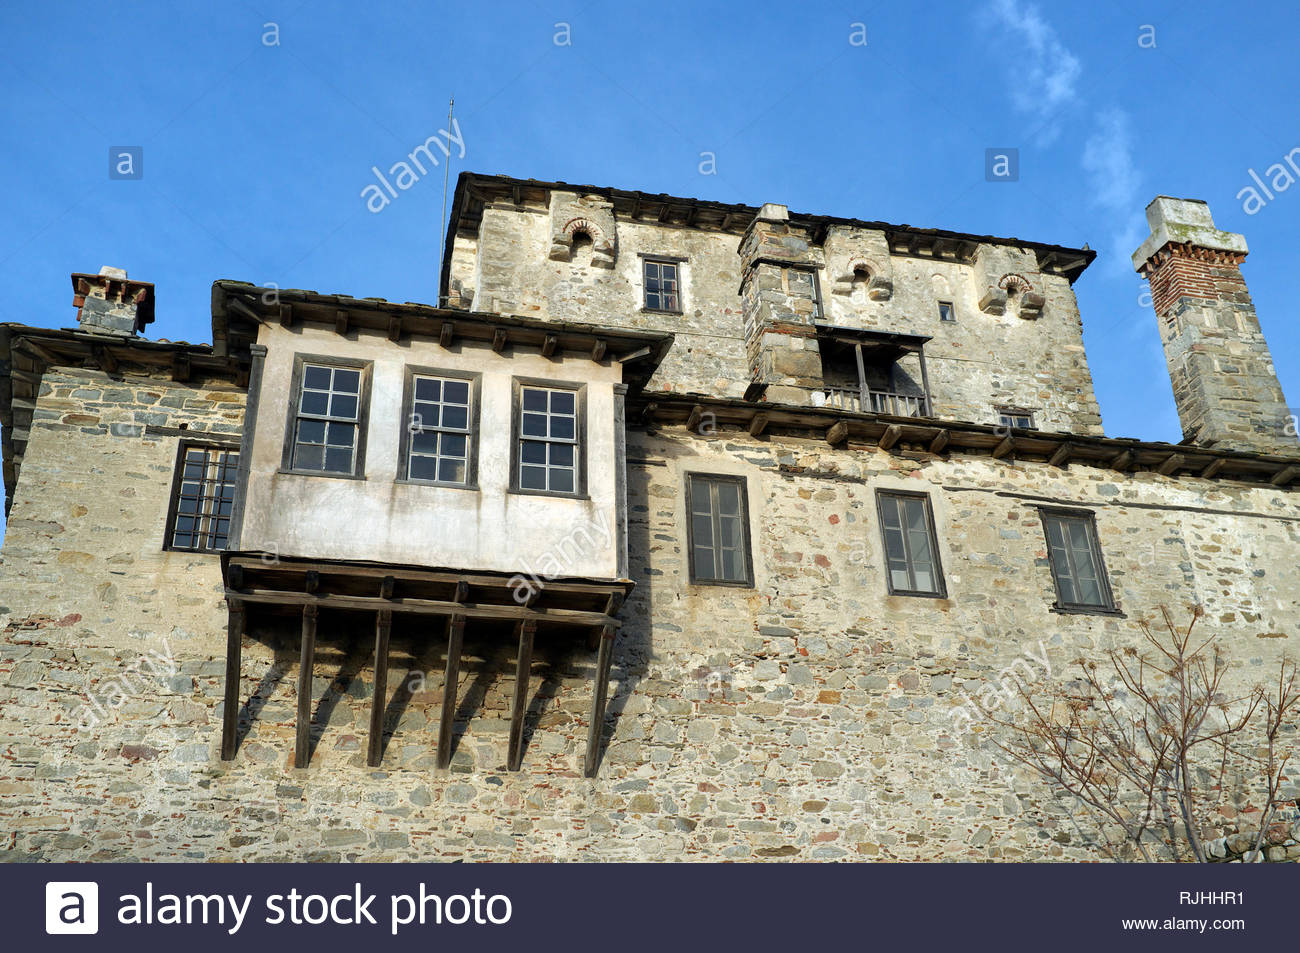 The Tower of Ouranoupolis, in the village of Ouranoupoli, Chalkidiki, Central Macedonia, Greece. Stock Photo